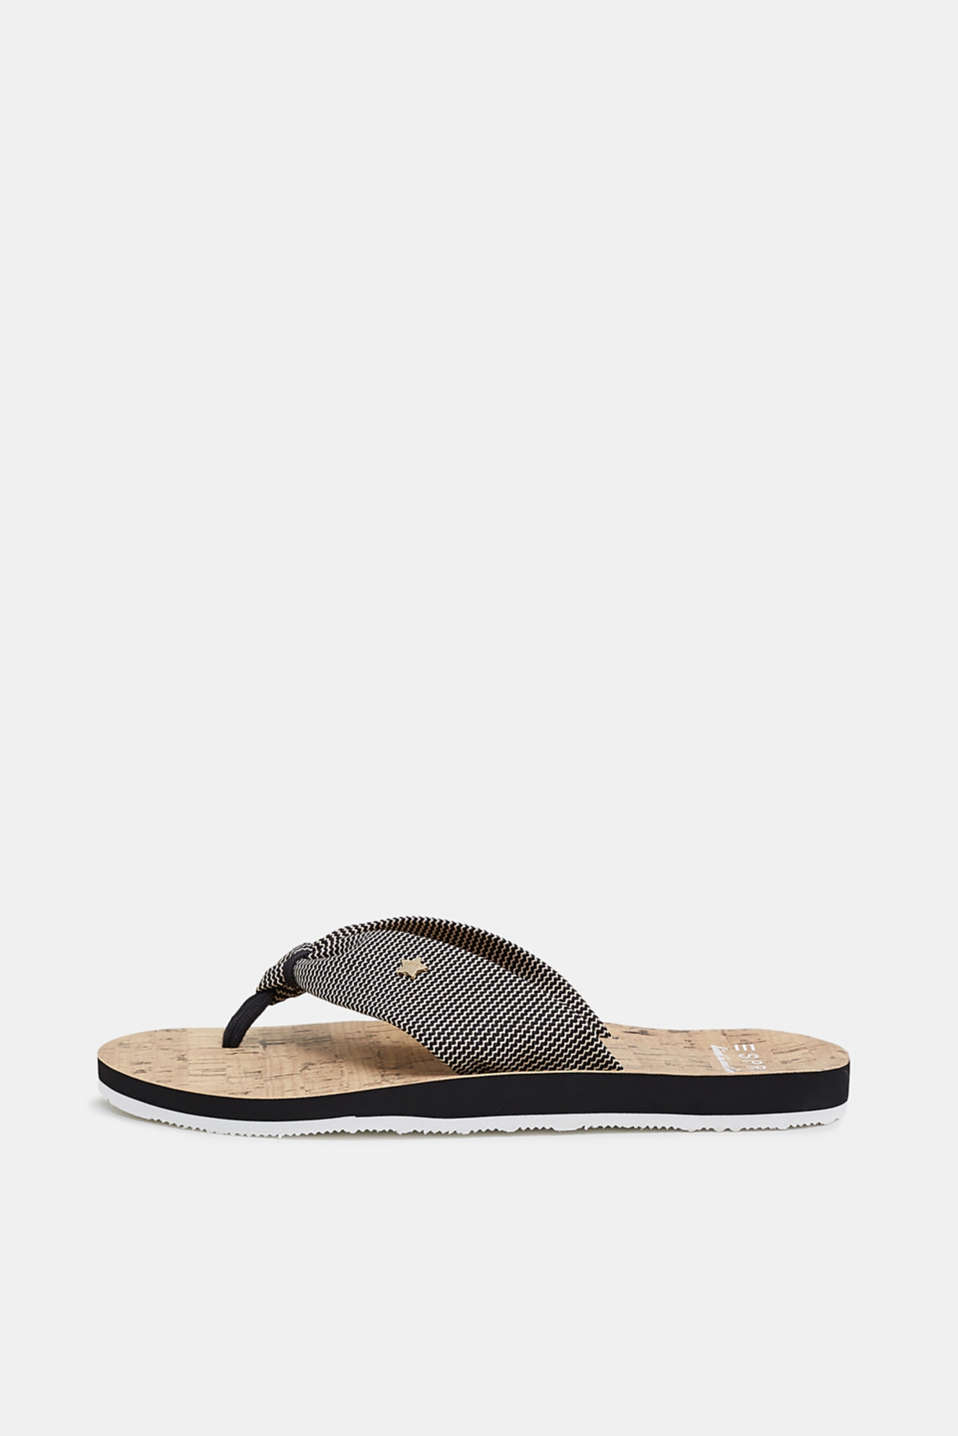 Esprit - Toe-post sandals with cork print